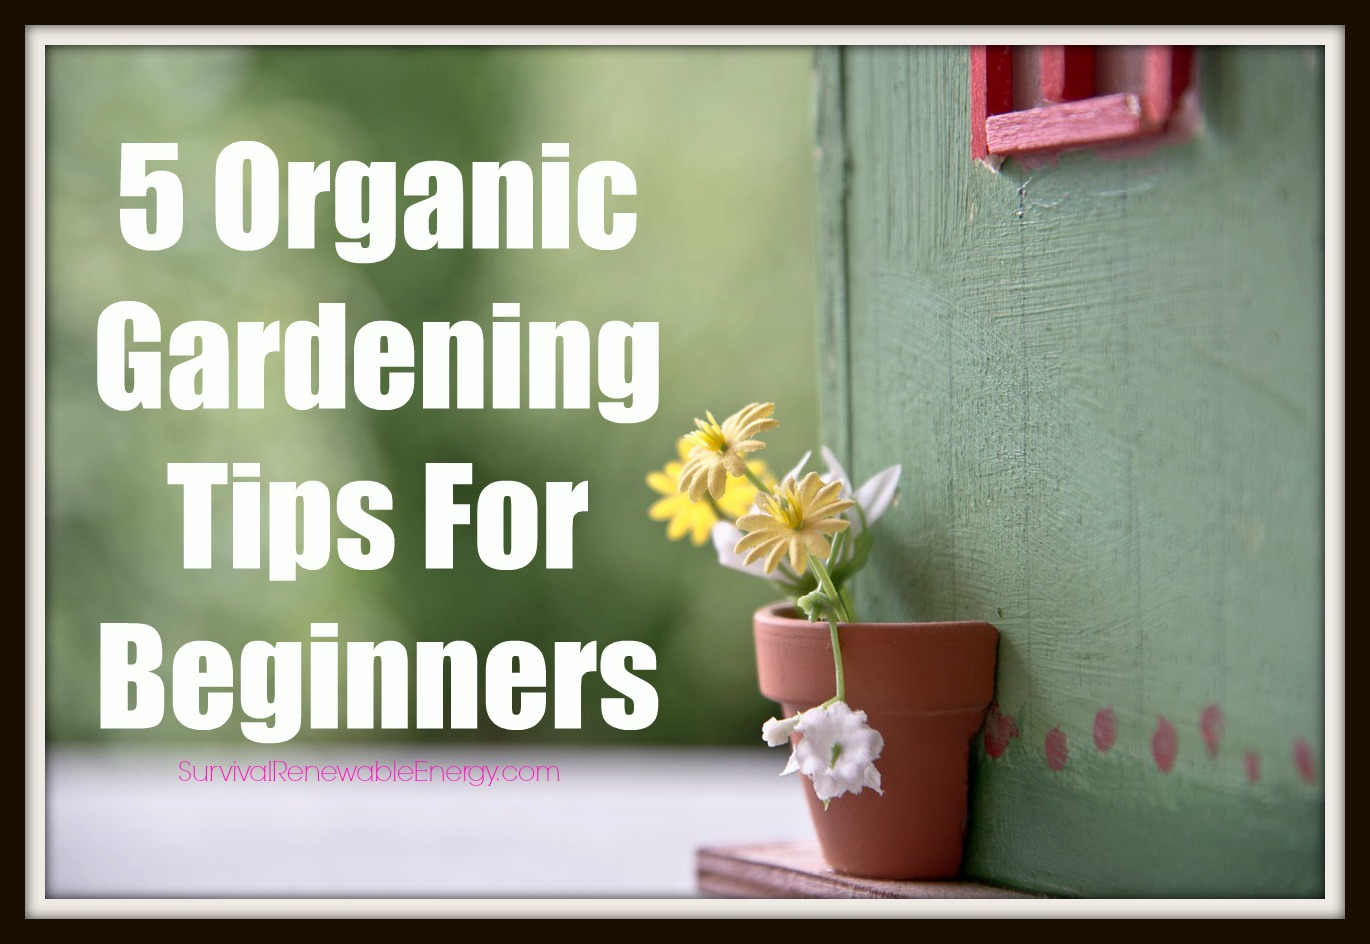 5 organic gardening tips for beginners for Gardening tips